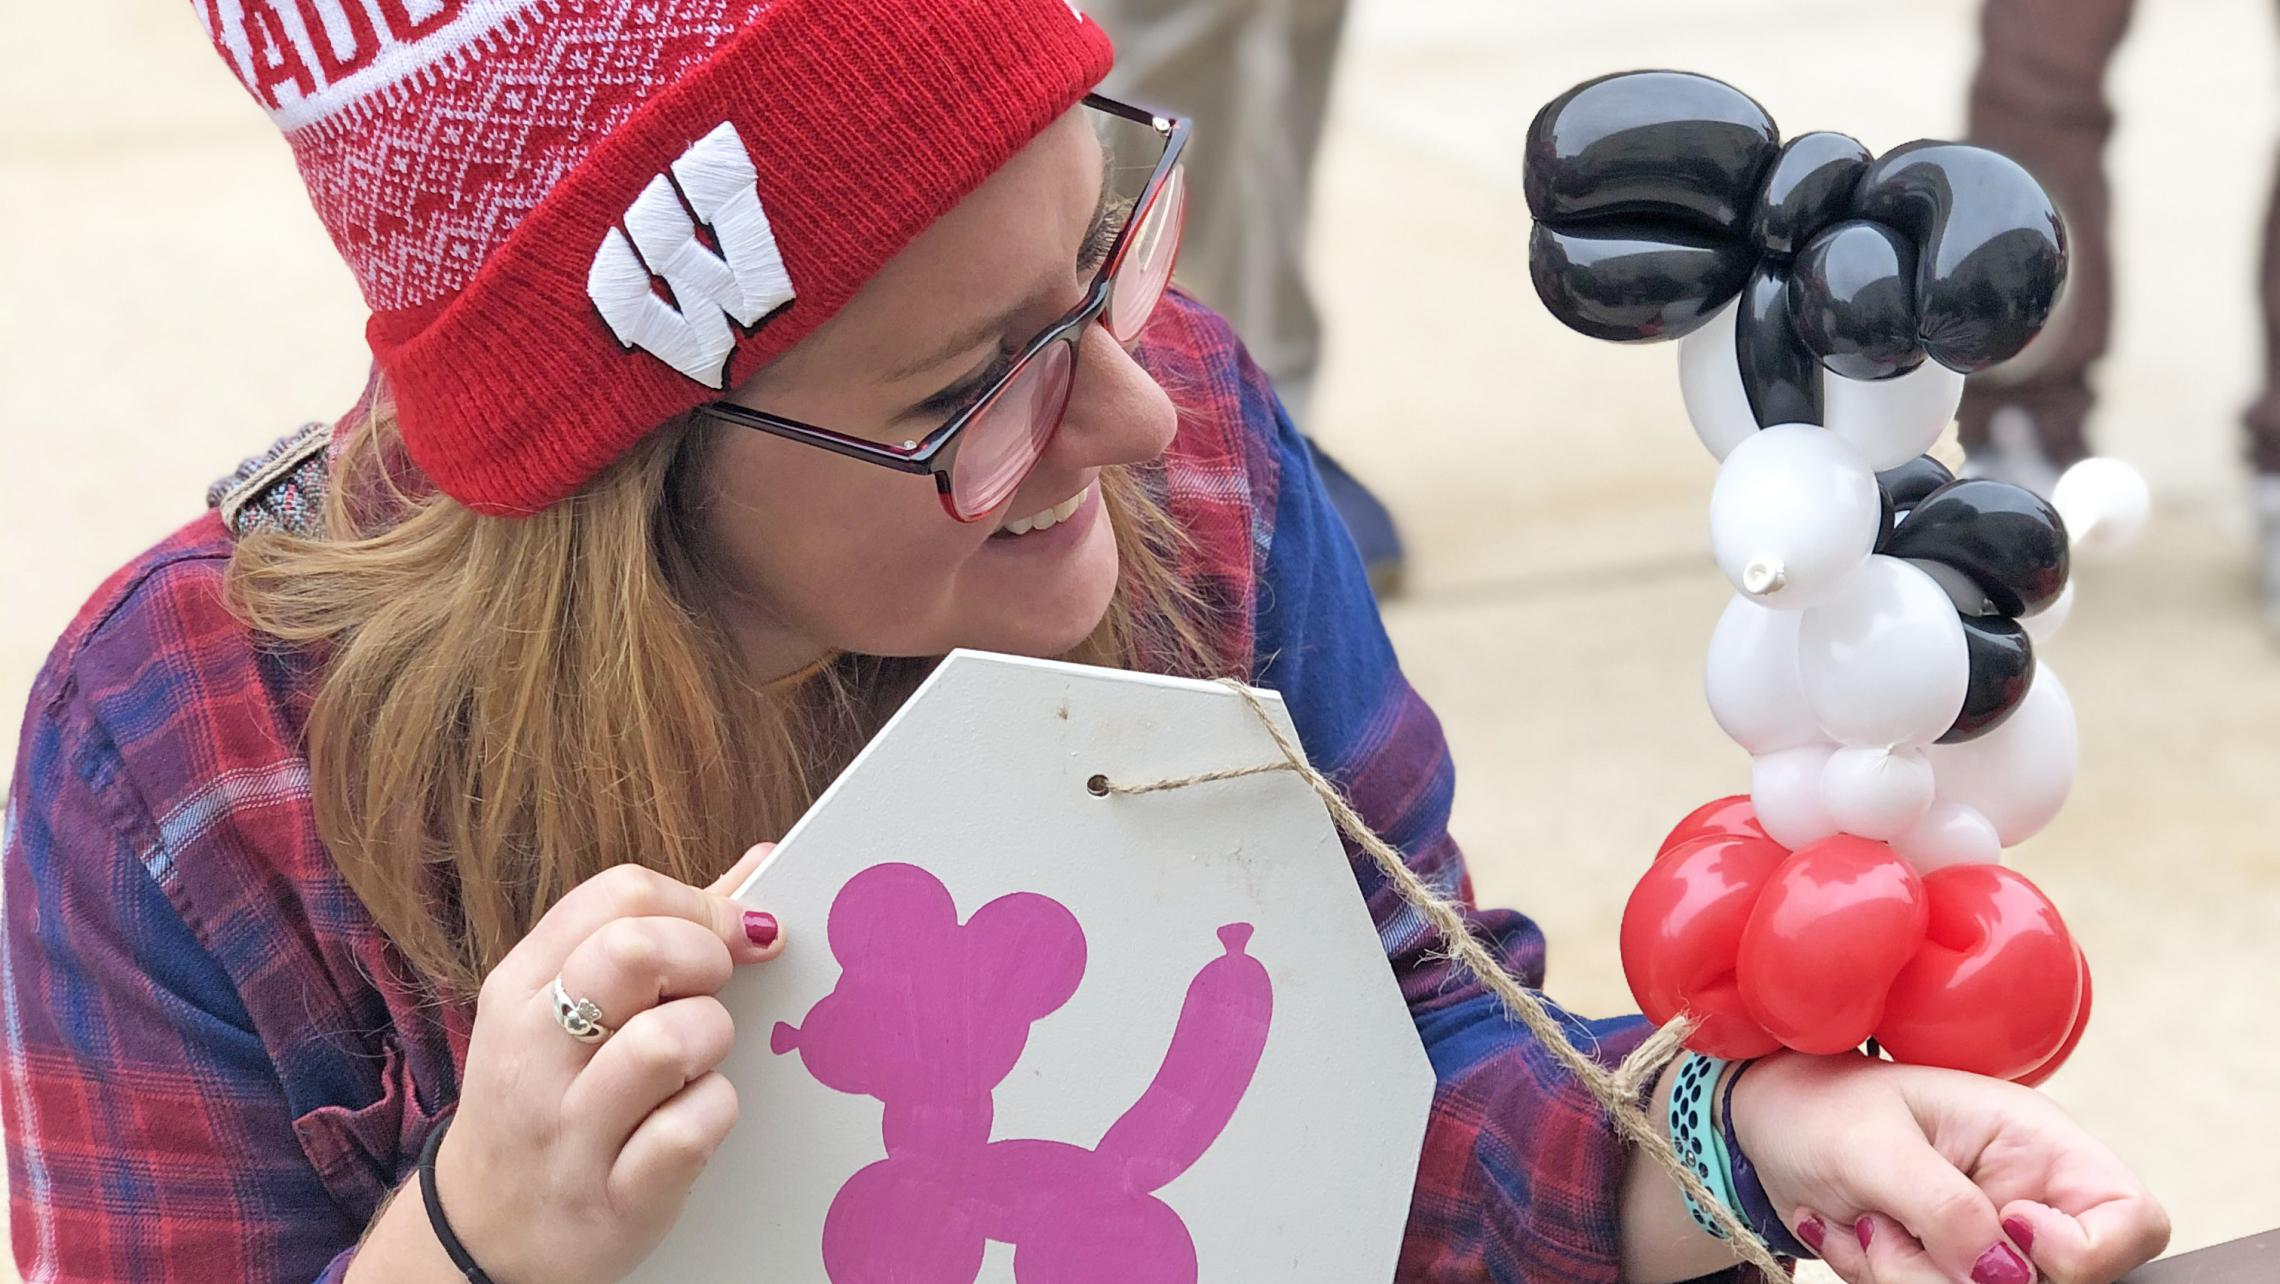 Residents enjoying ULI's second annual tailgate during the Wisconsin Badgers Football Game with balloon figures from Funny Faces